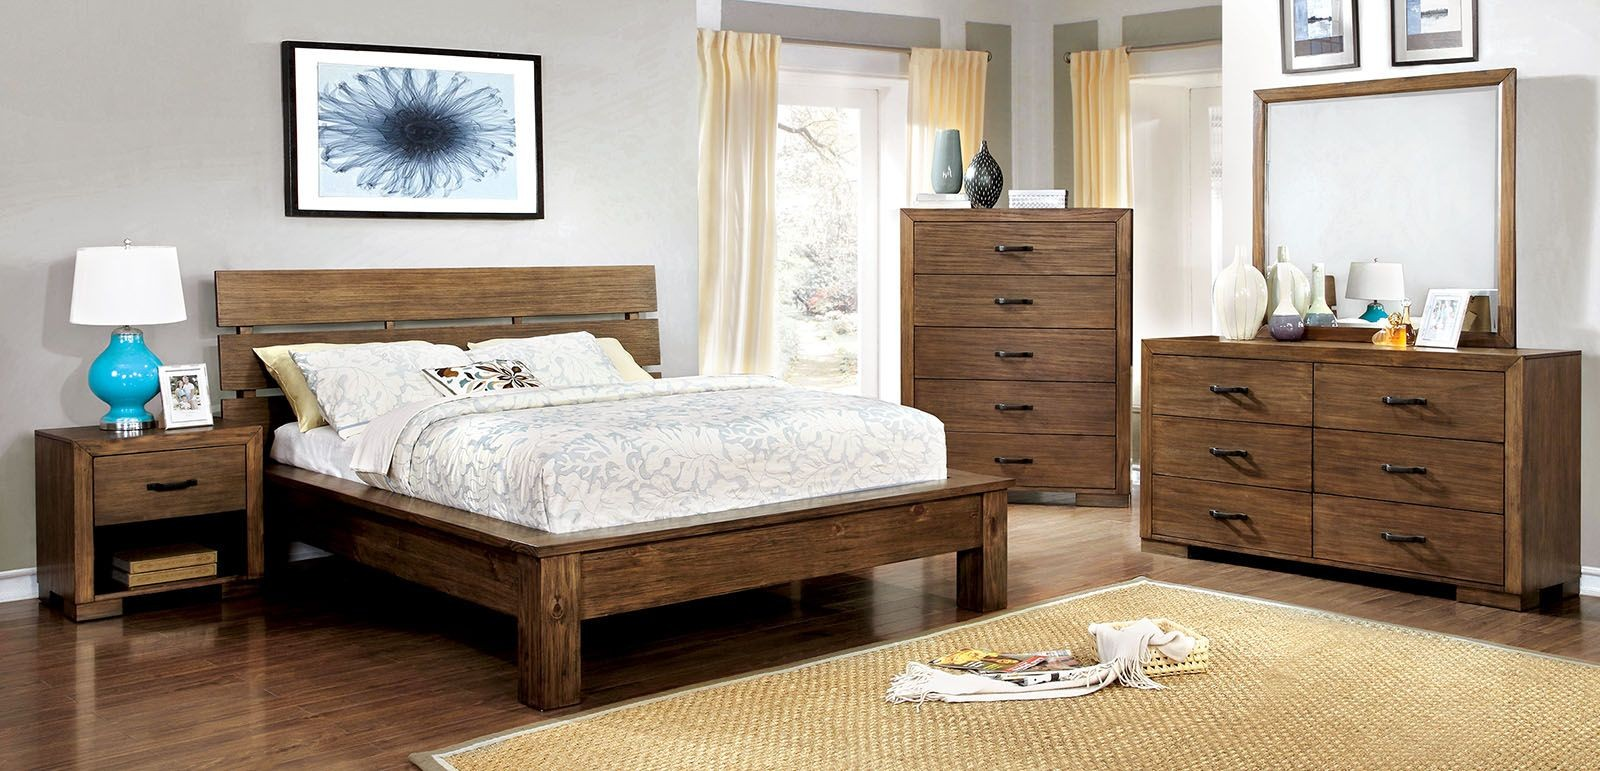 Roraima Reclaimed Pine Wood Bedroom Set From Furniture Of